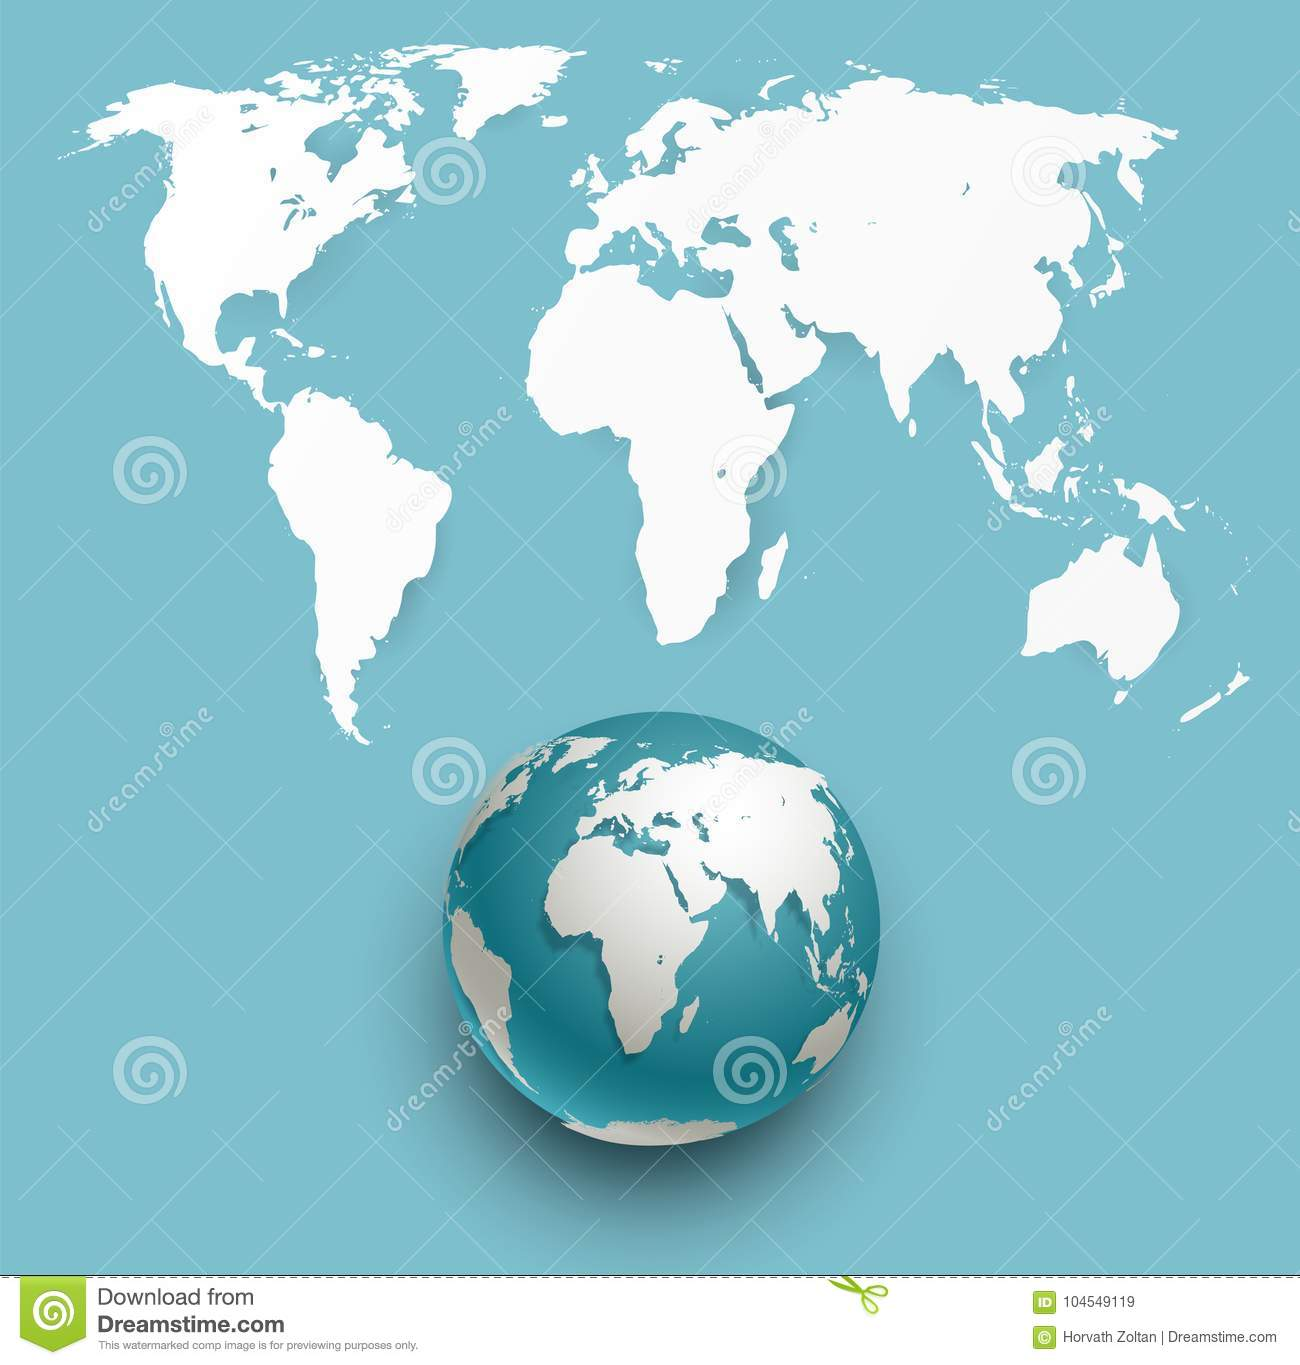 Vector globe and world map stock illustration illustration of download vector globe and world map stock illustration illustration of continent 104549119 gumiabroncs Image collections